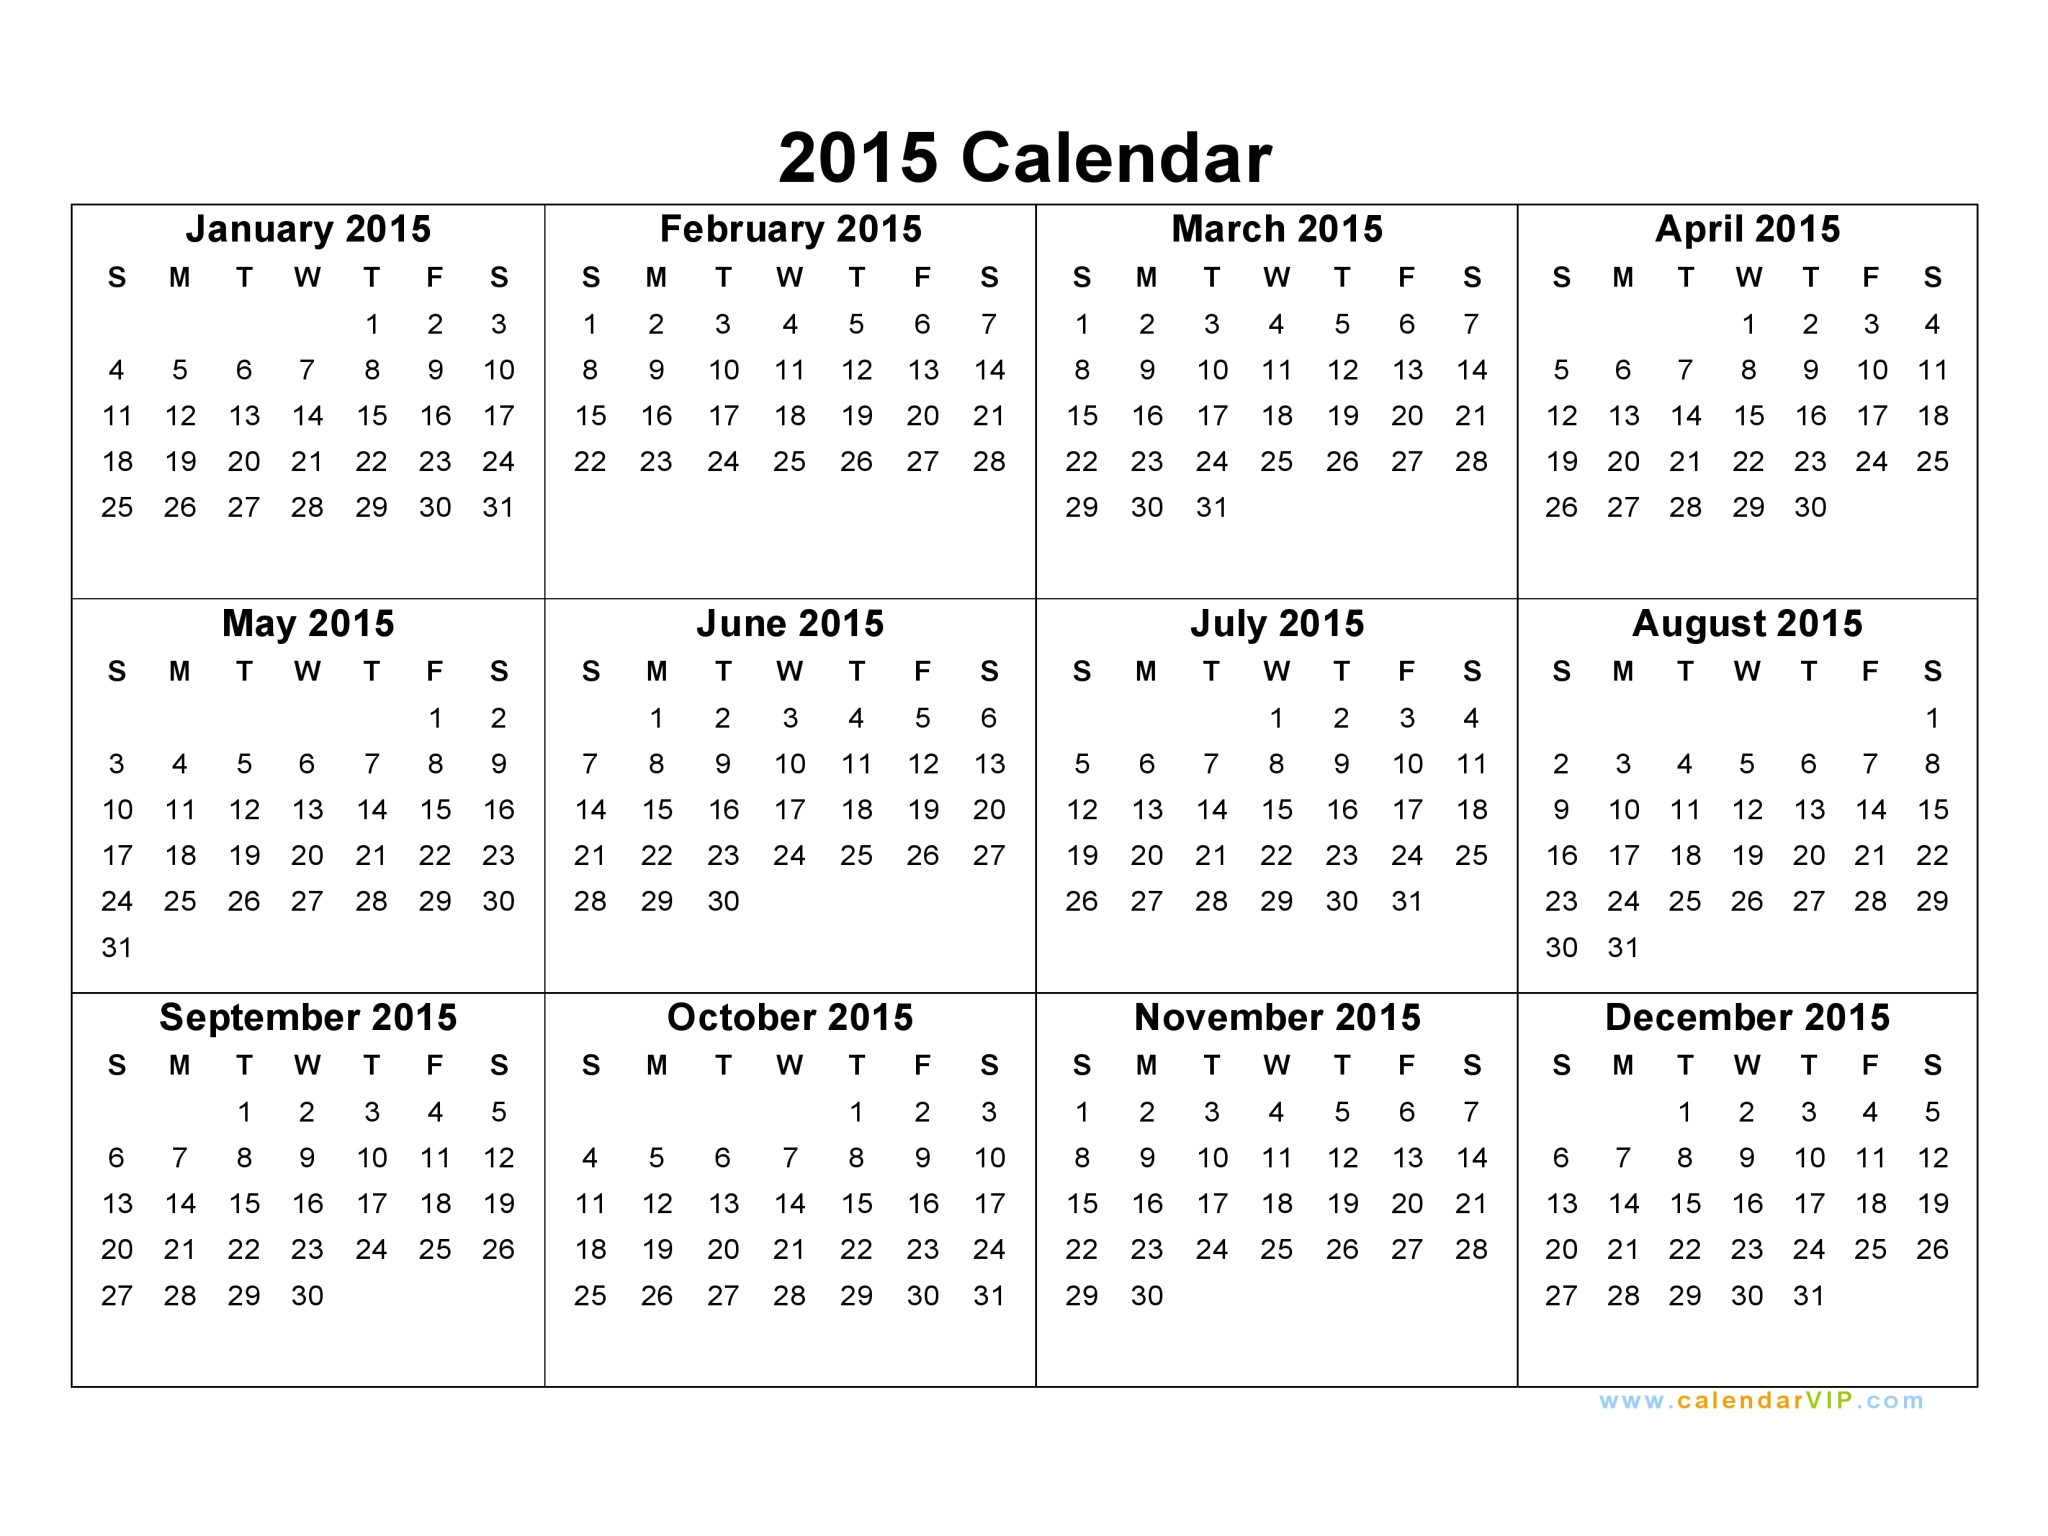 Templates for Calendars 2015 2015 Calendar Blank Printable Calendar Template In Pdf